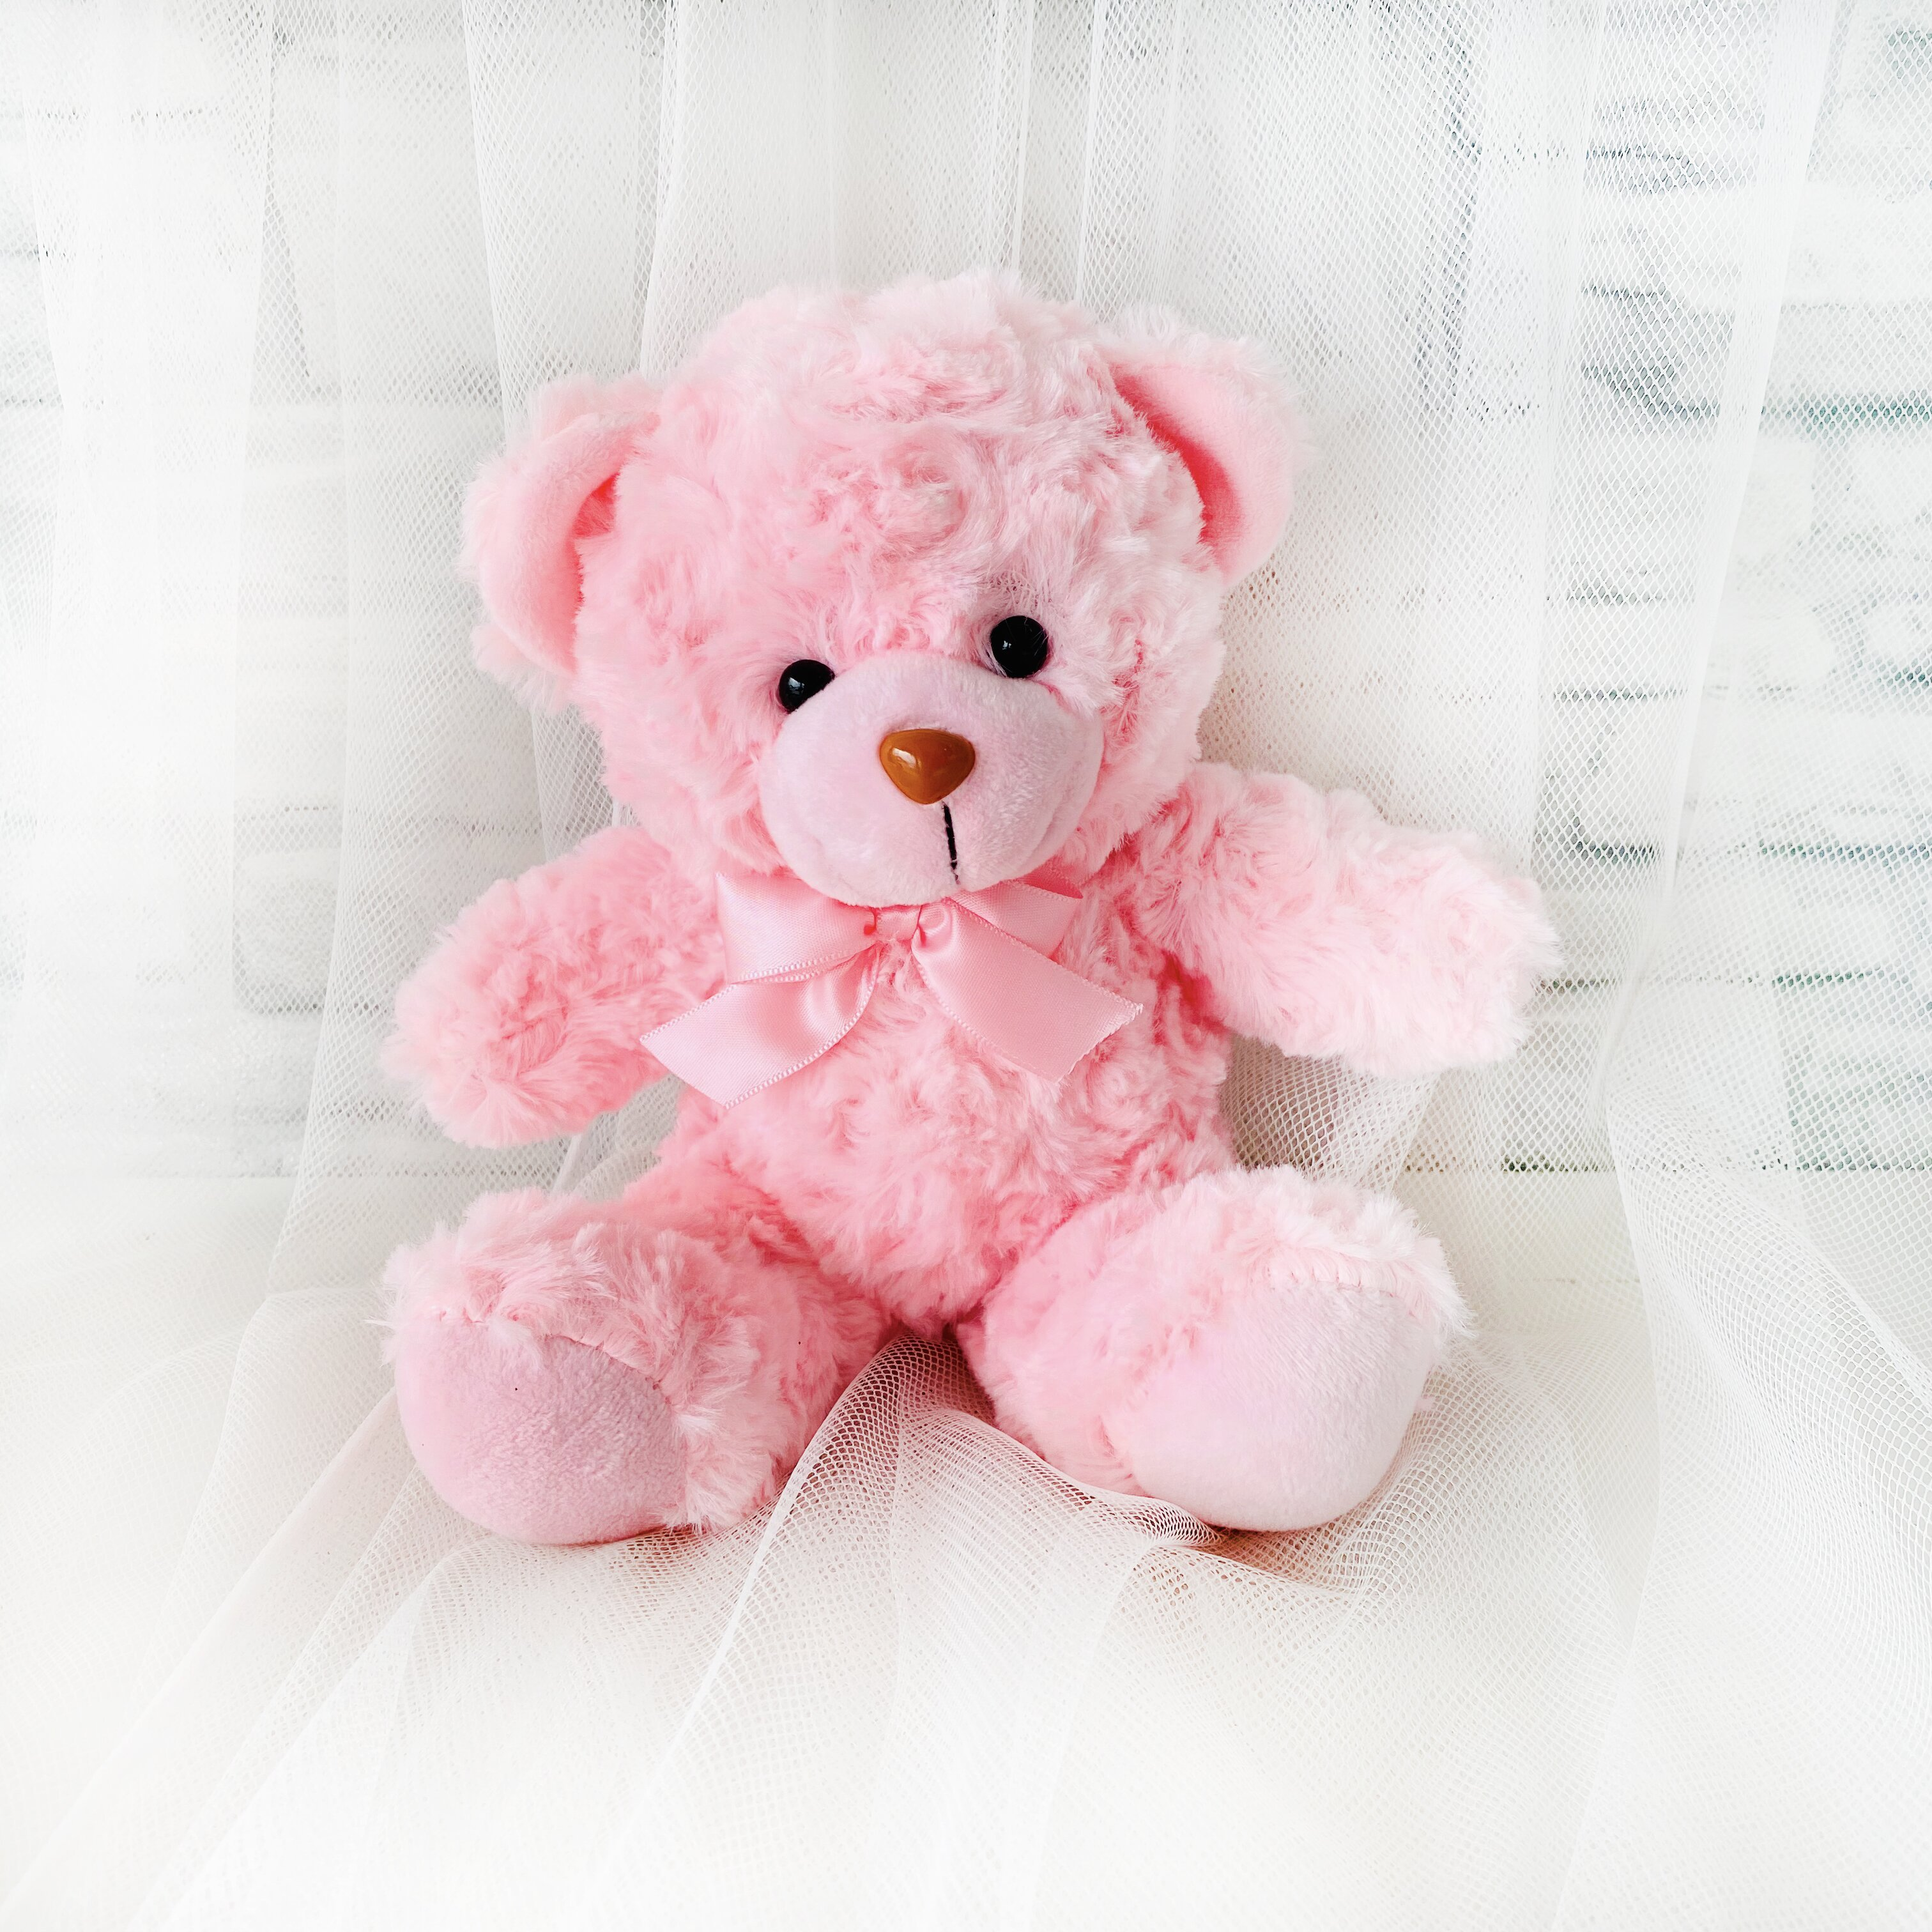 6 inches Pinky Bear - Freeland Floral 自由花苑